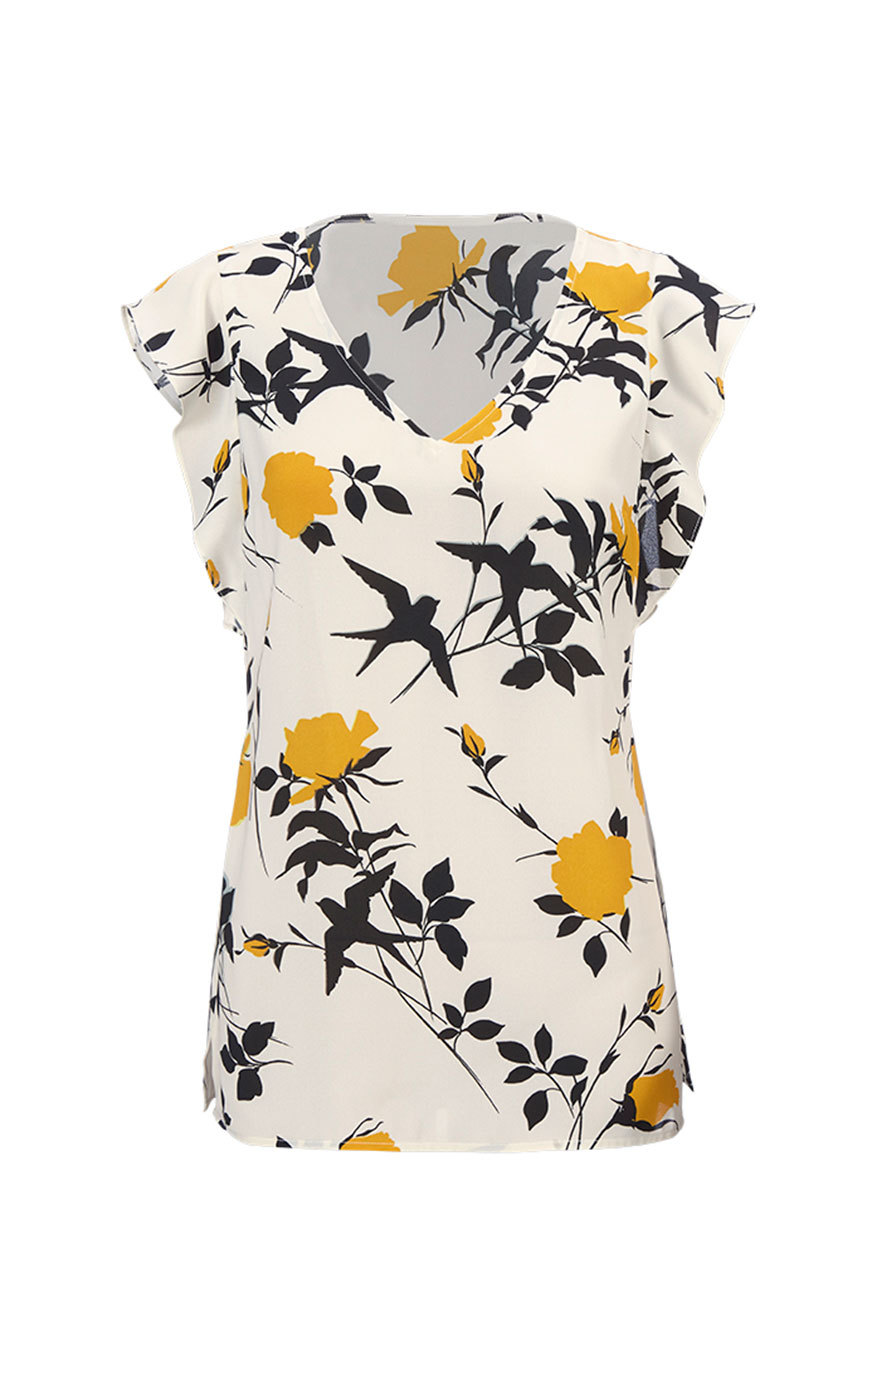 cabi's Birdwatcher Top